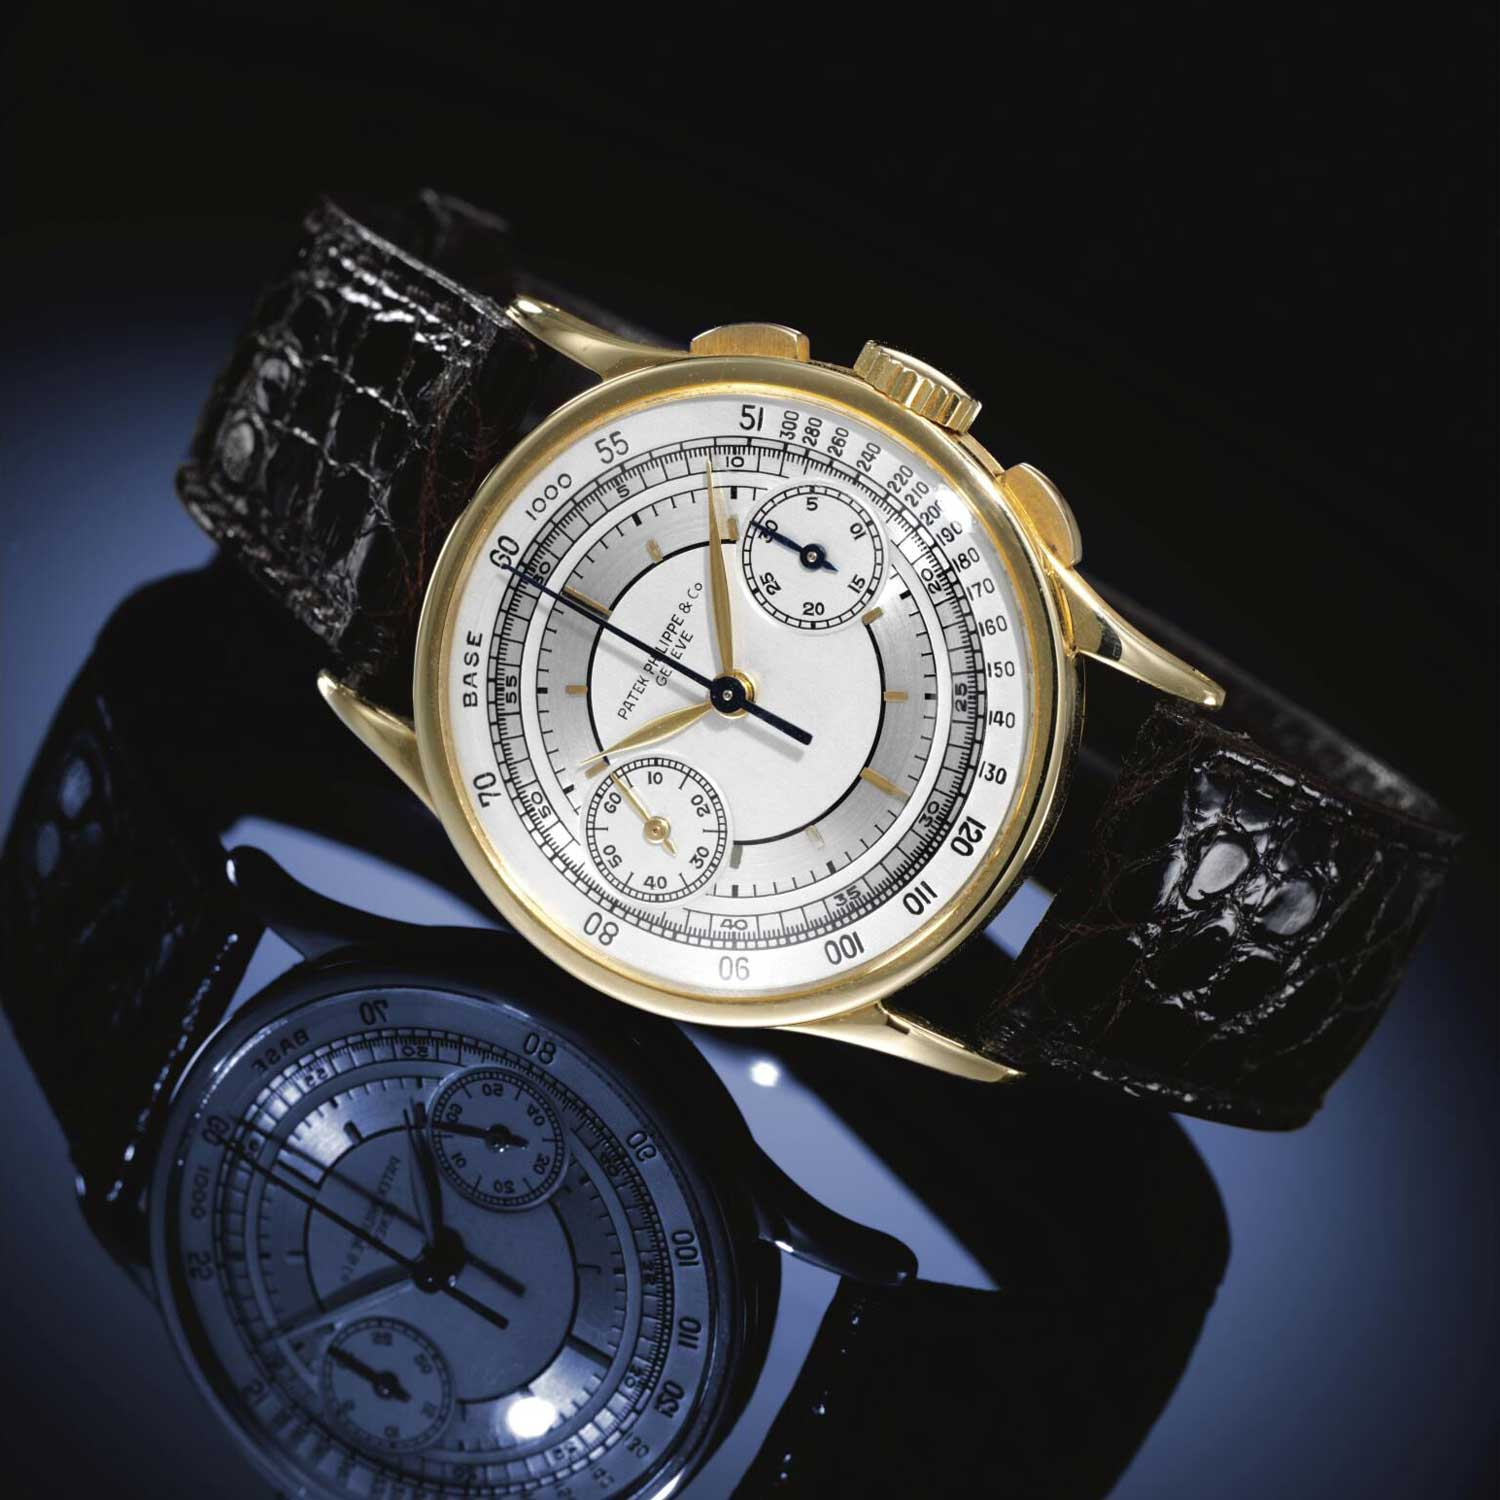 1937 Patek Philippe ref 533 yellow gold chronograph with a tow tone sector dial (Image: Sothebys.com)